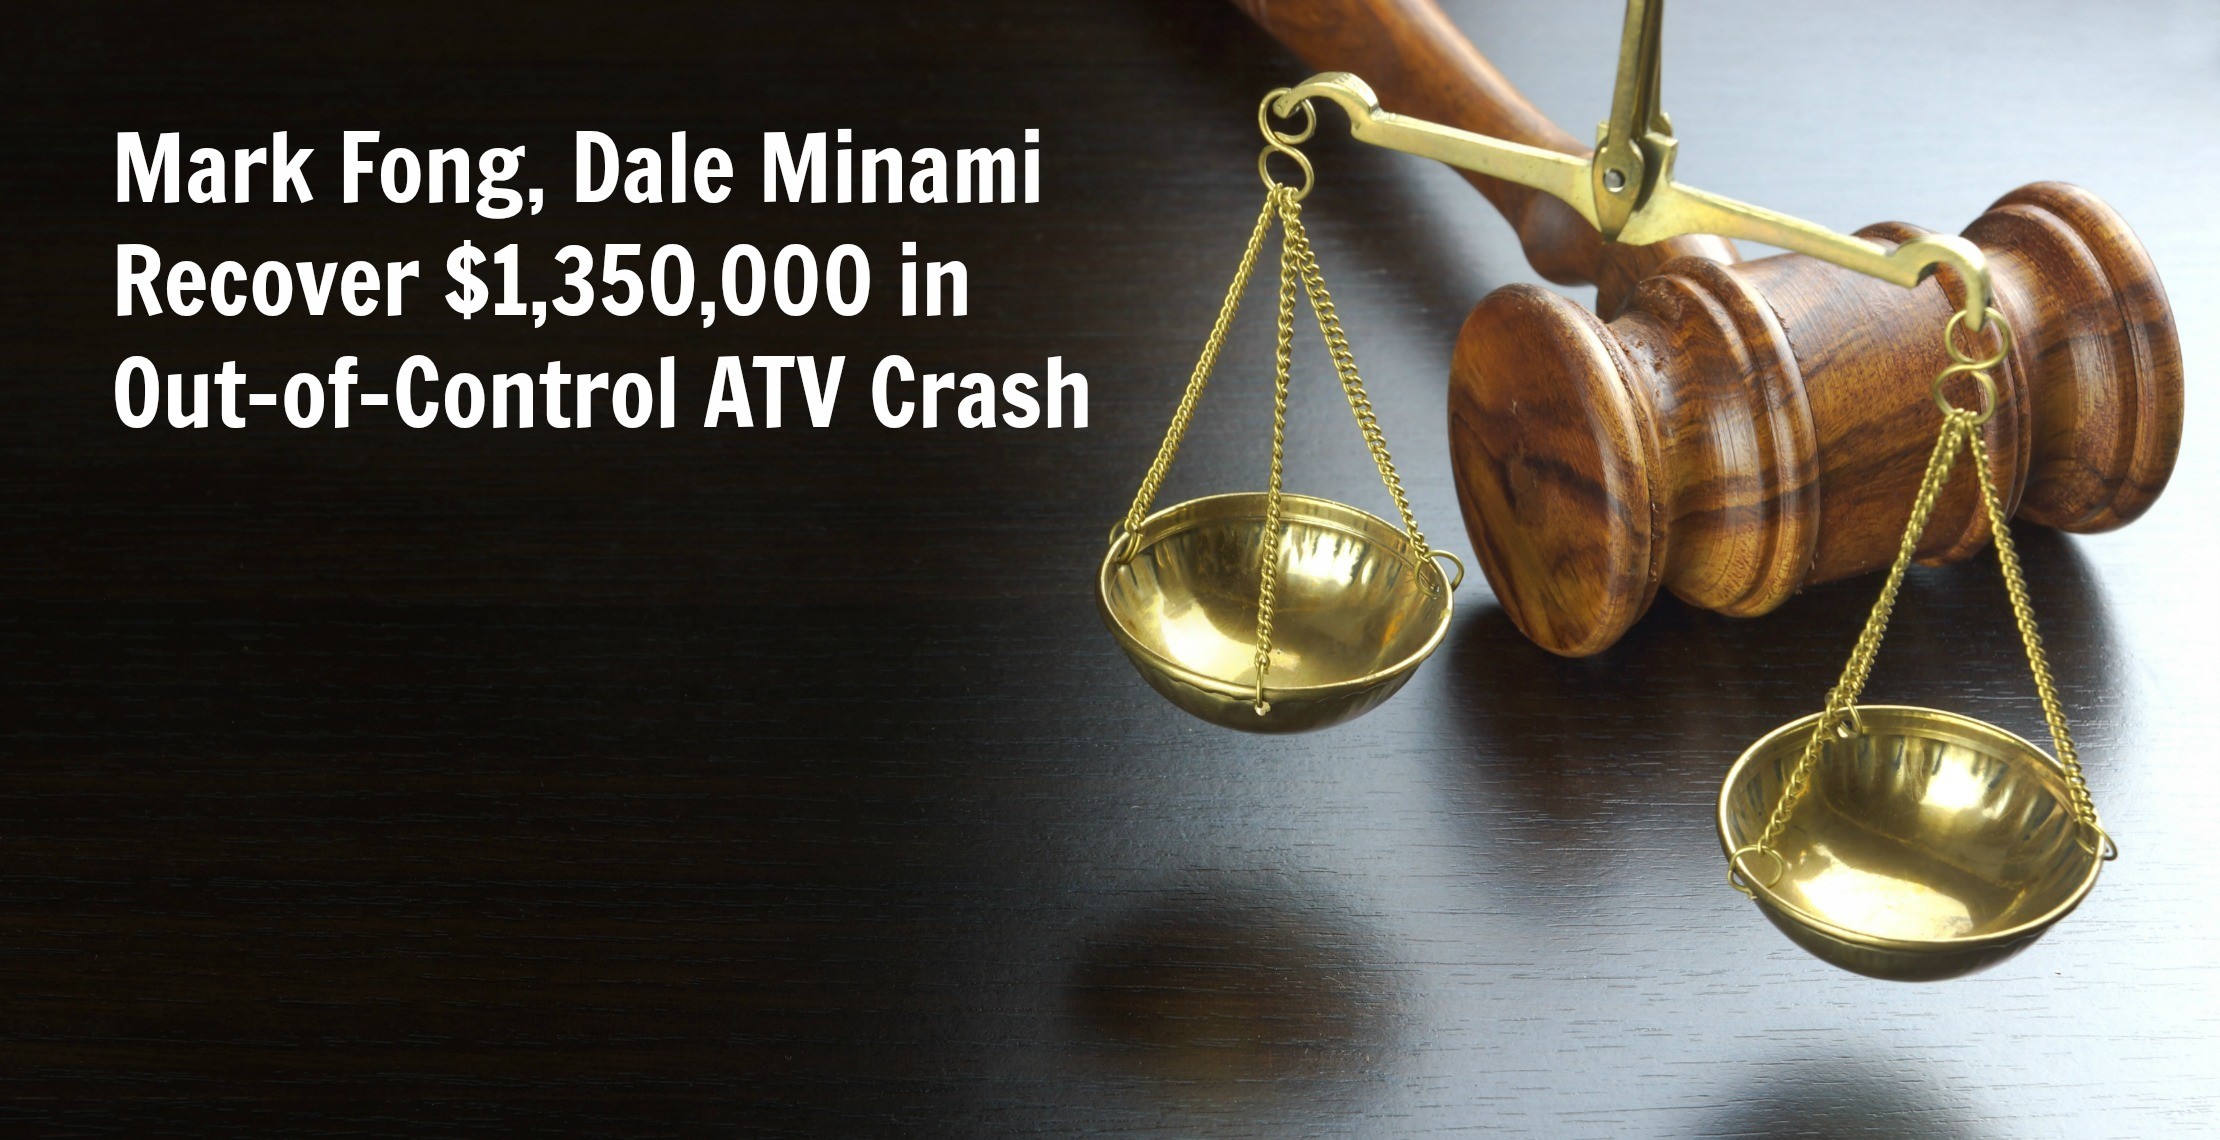 Mark Fong, Dale Minami Recover $1,350,000 in Out-of-Control ATV Crash